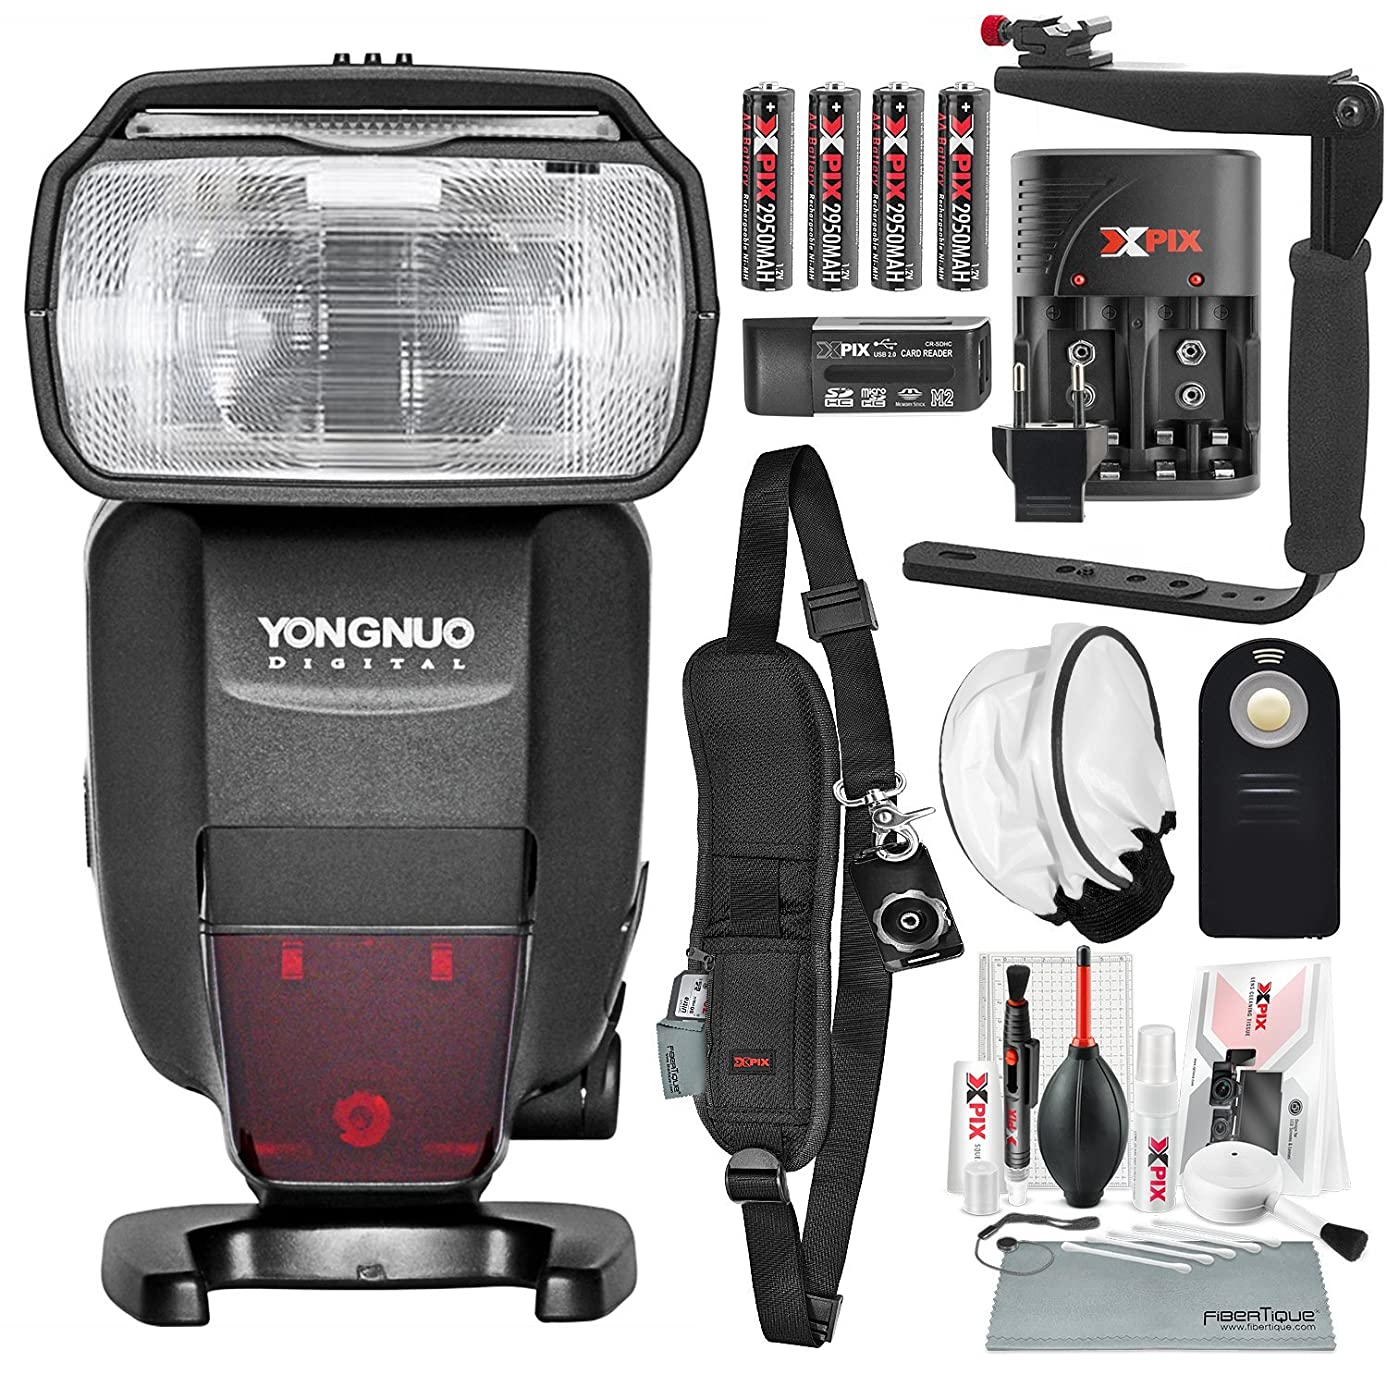 Yongnuo Speedlite YN600EX-RT II for Canon Cameras with Flash Bracket, Diffuser, and DSLR Shoulder Strap, Xpix Cleaning Kit Deluxe Bundle